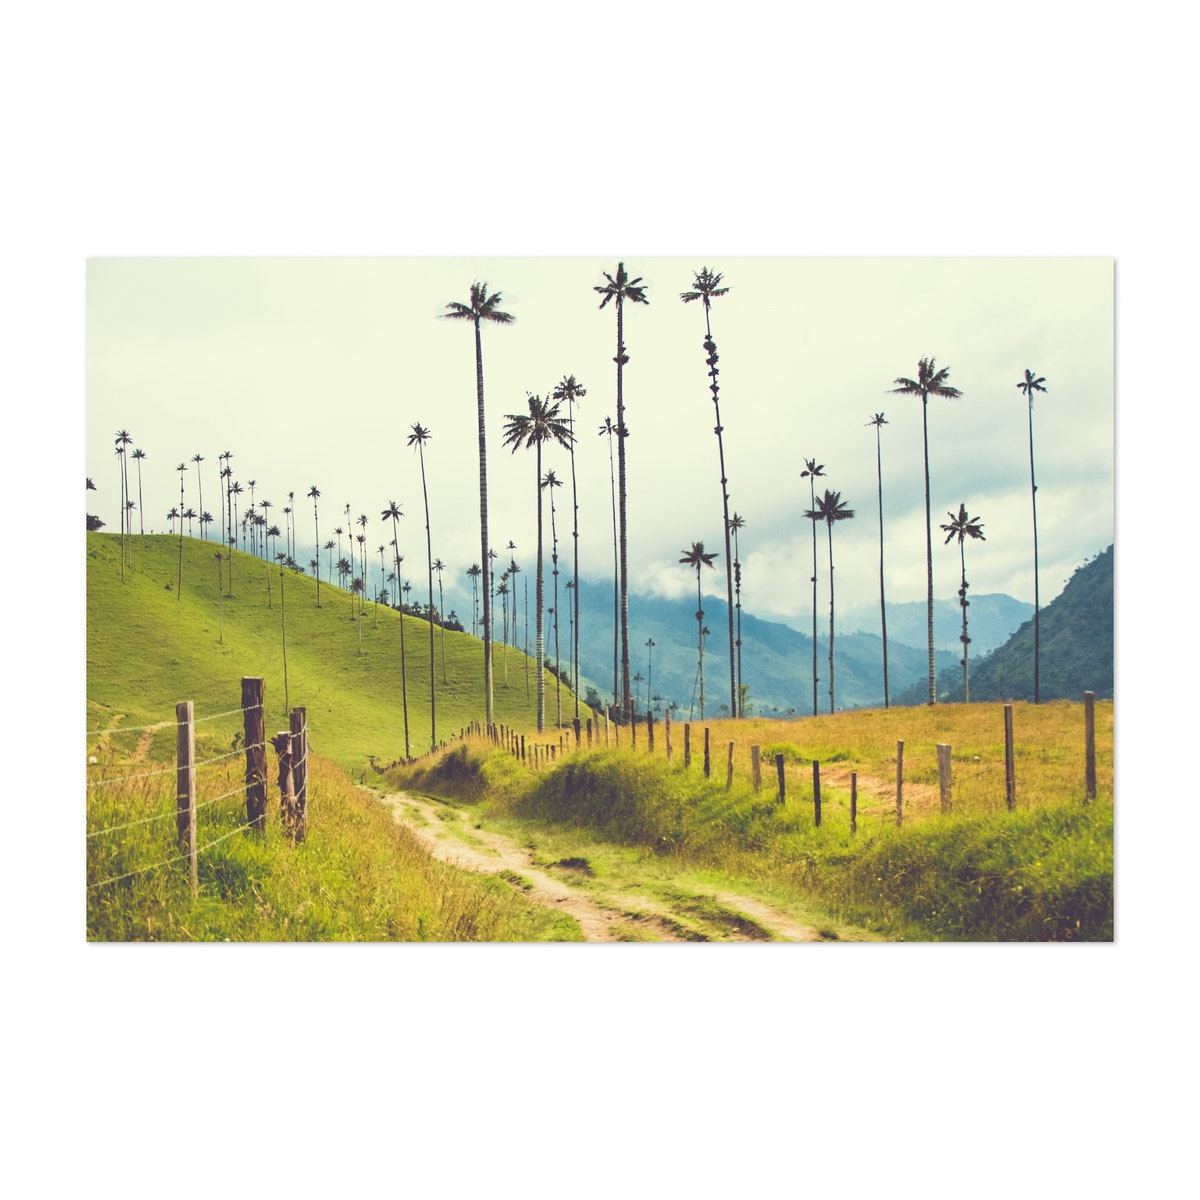 Cocora Valley Palms Colombia